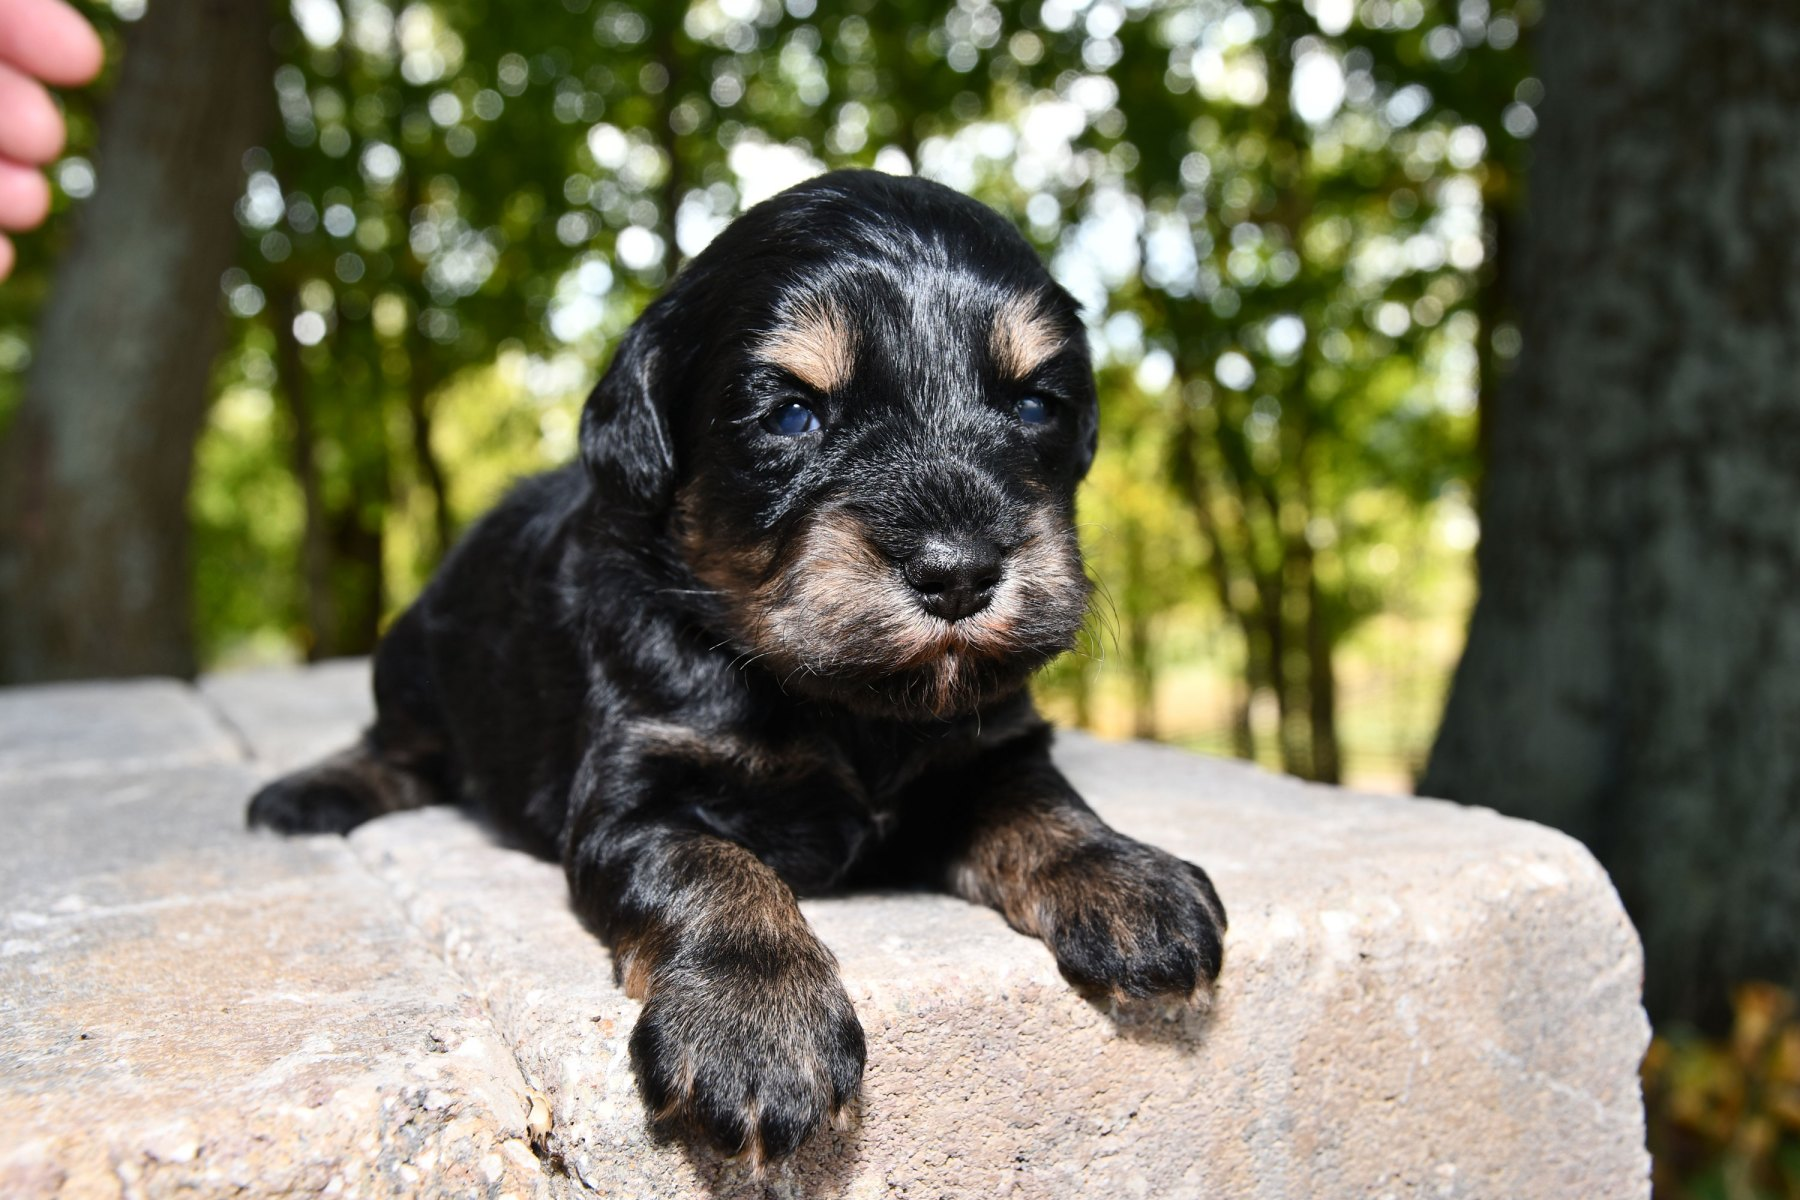 20190930_All-Pups-9-30_5923